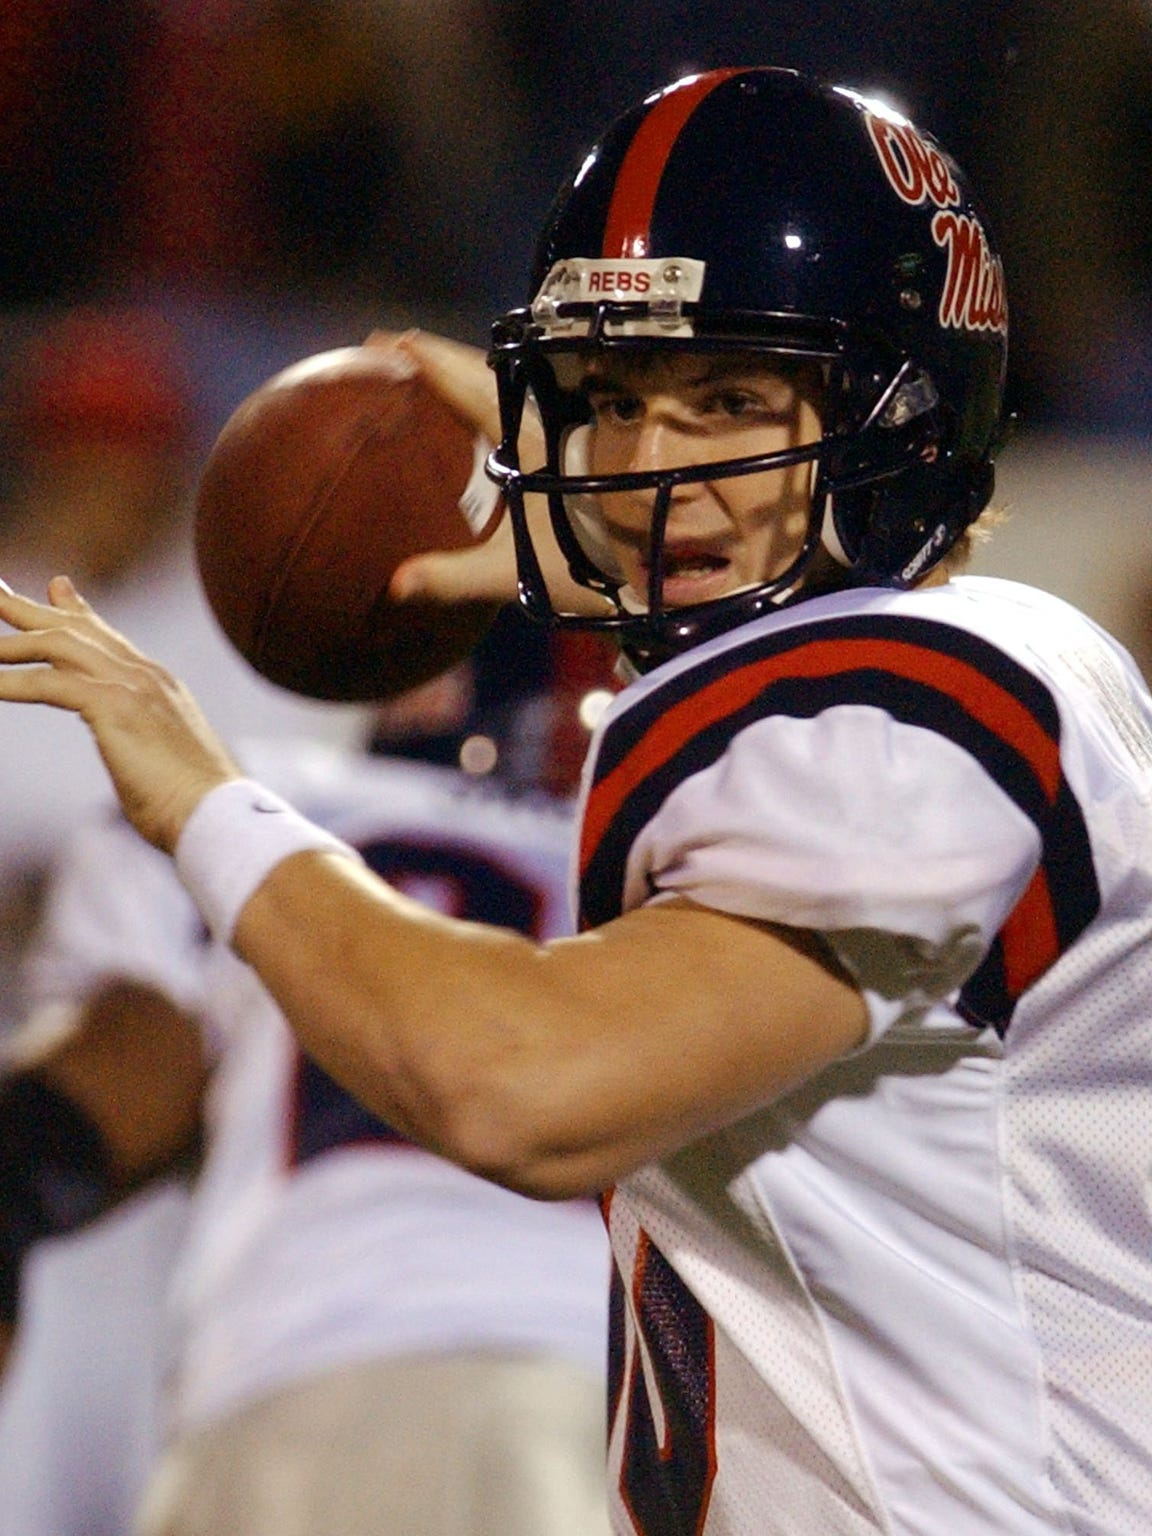 Eli Manning led Ole Miss to a share of the 2003 SEC West championship, was a finalist for the Heisman Trophy and was the No. 1 pick in the 2004 NFL Draft.